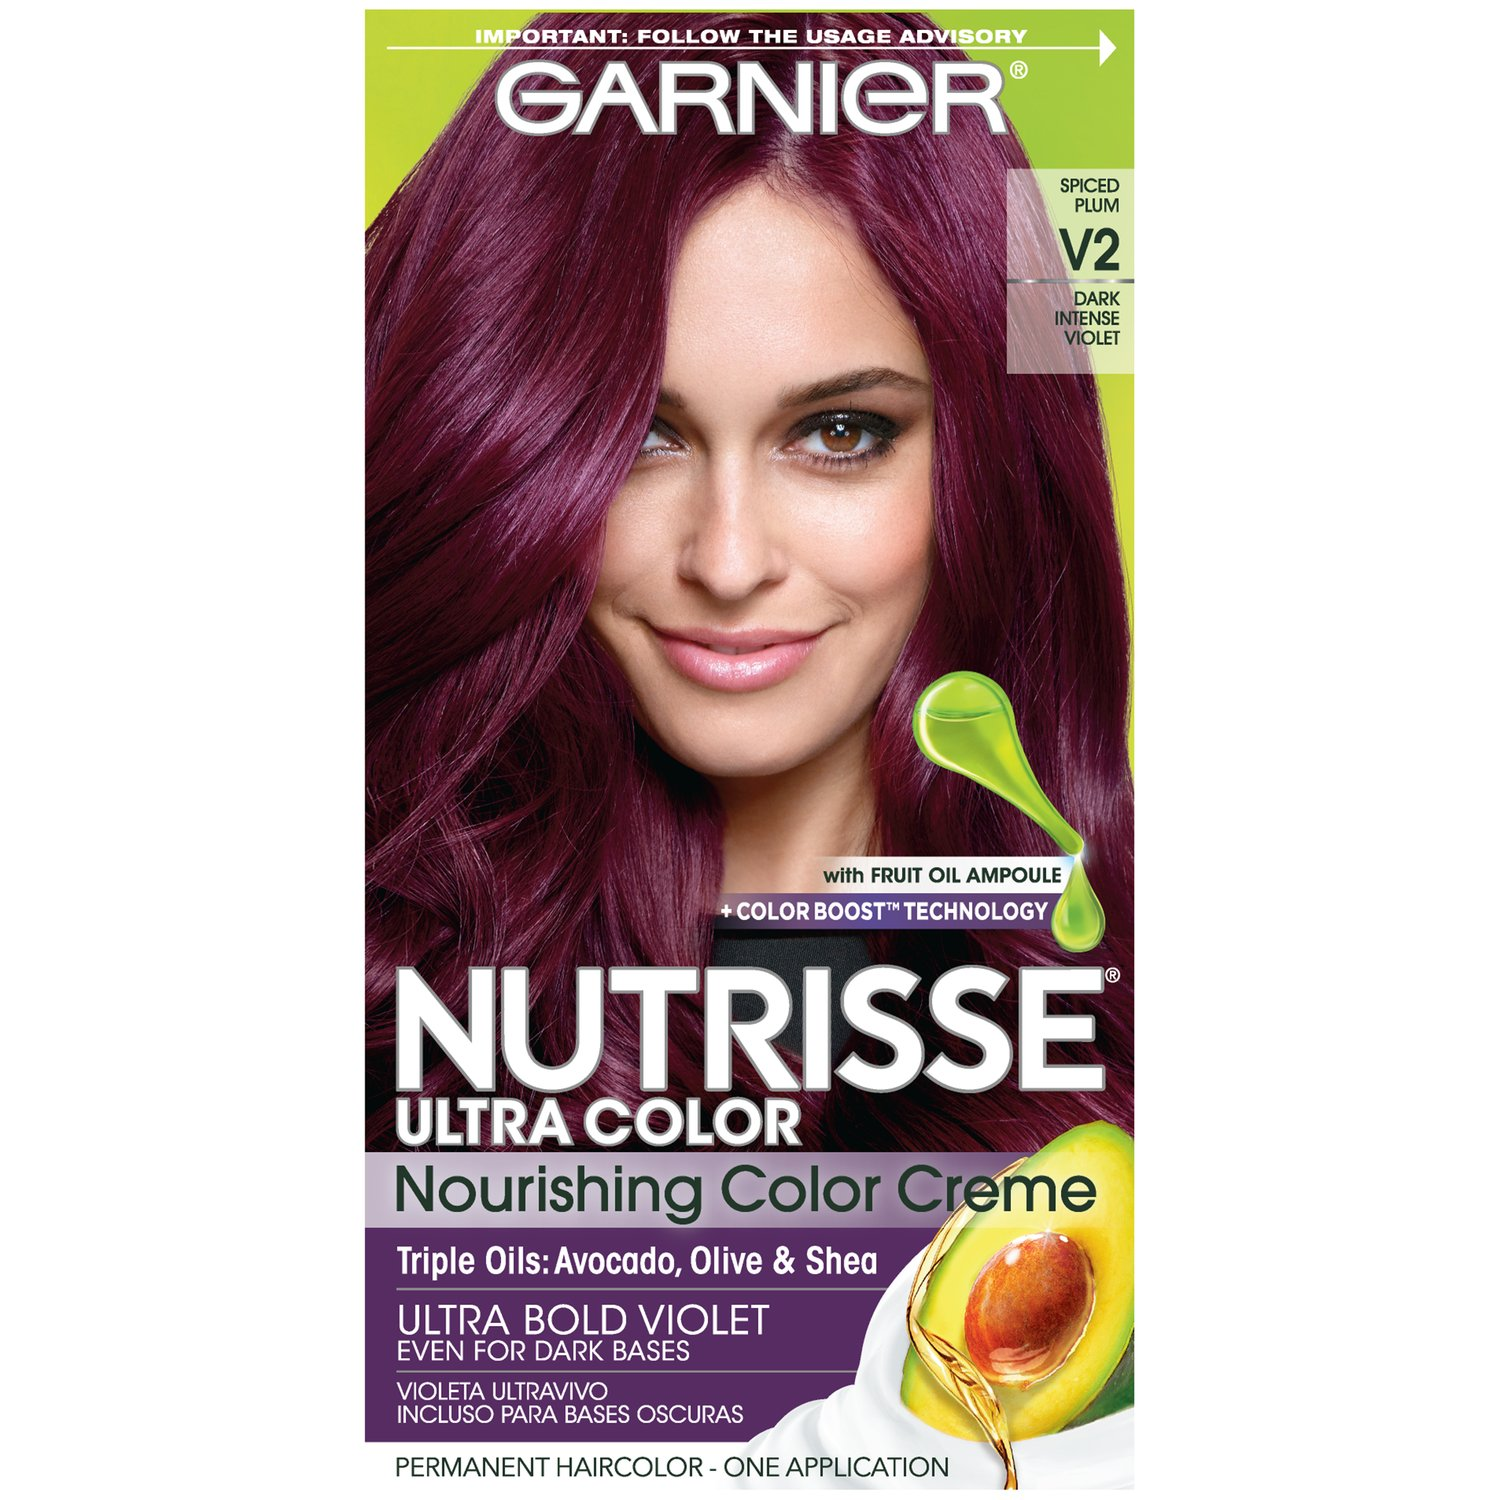 Garnier Nutrisse Ultra Color Nourishing Hair Color Crème